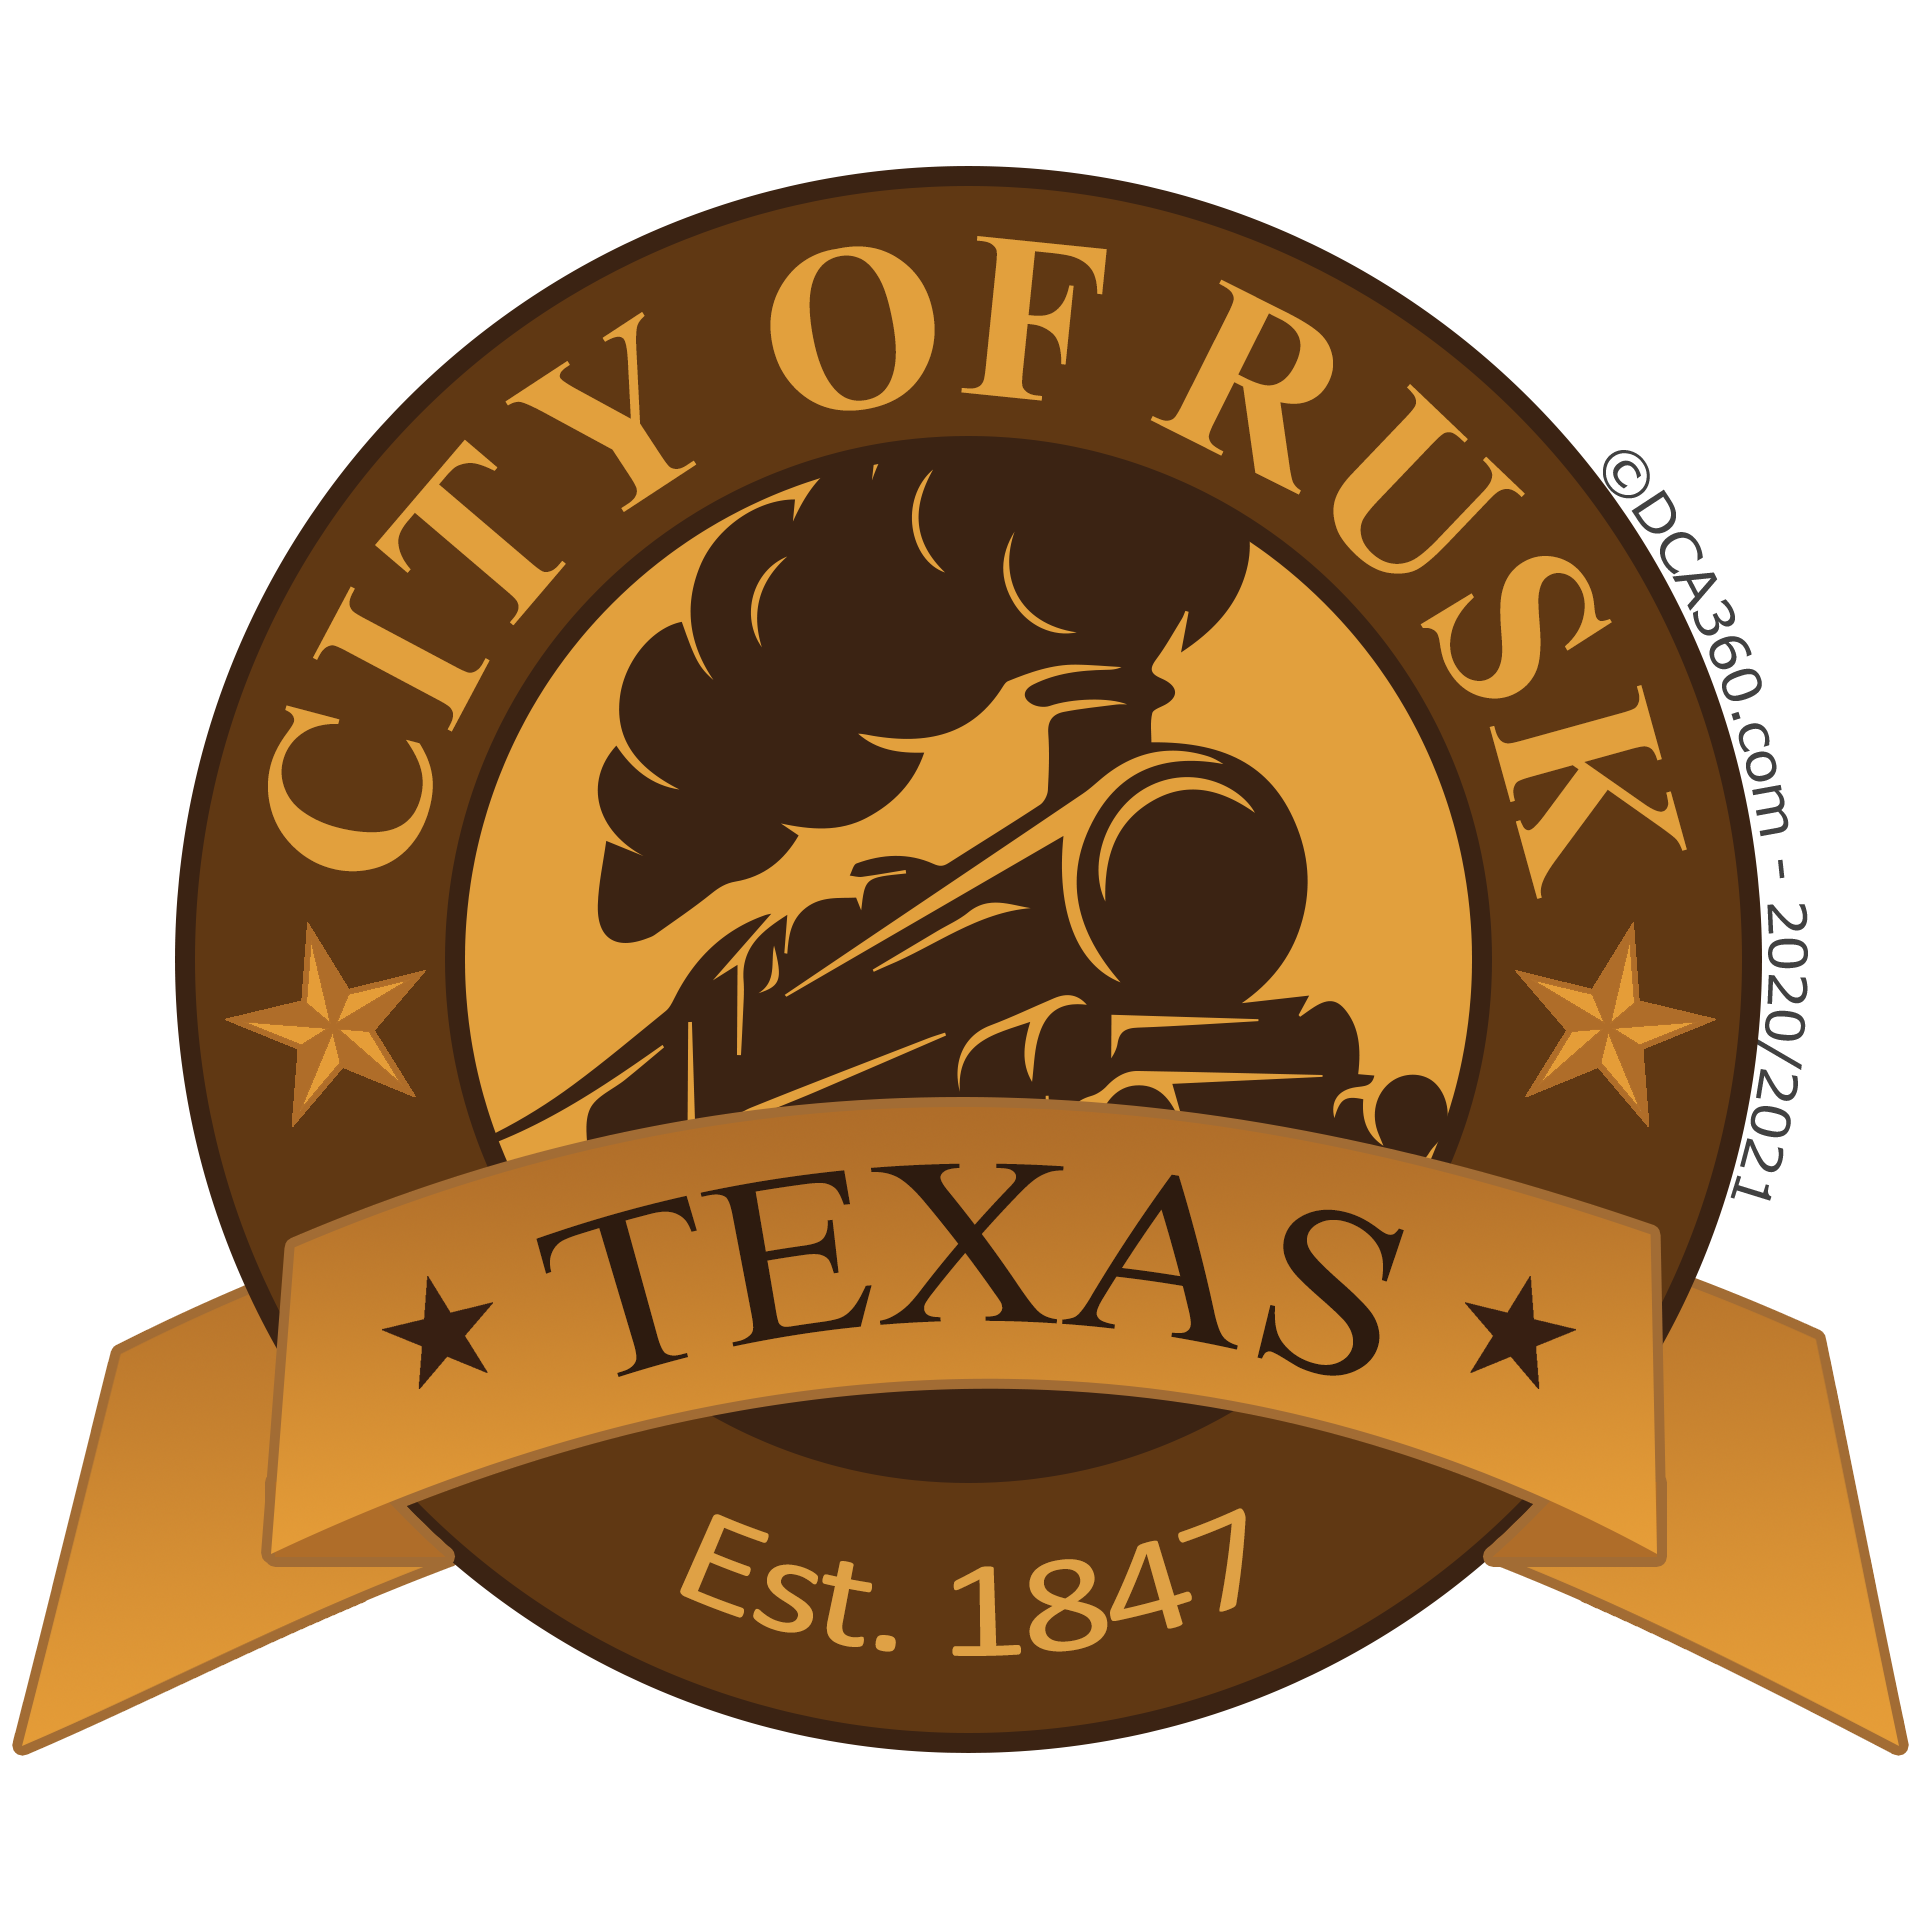 City of Rusk TX